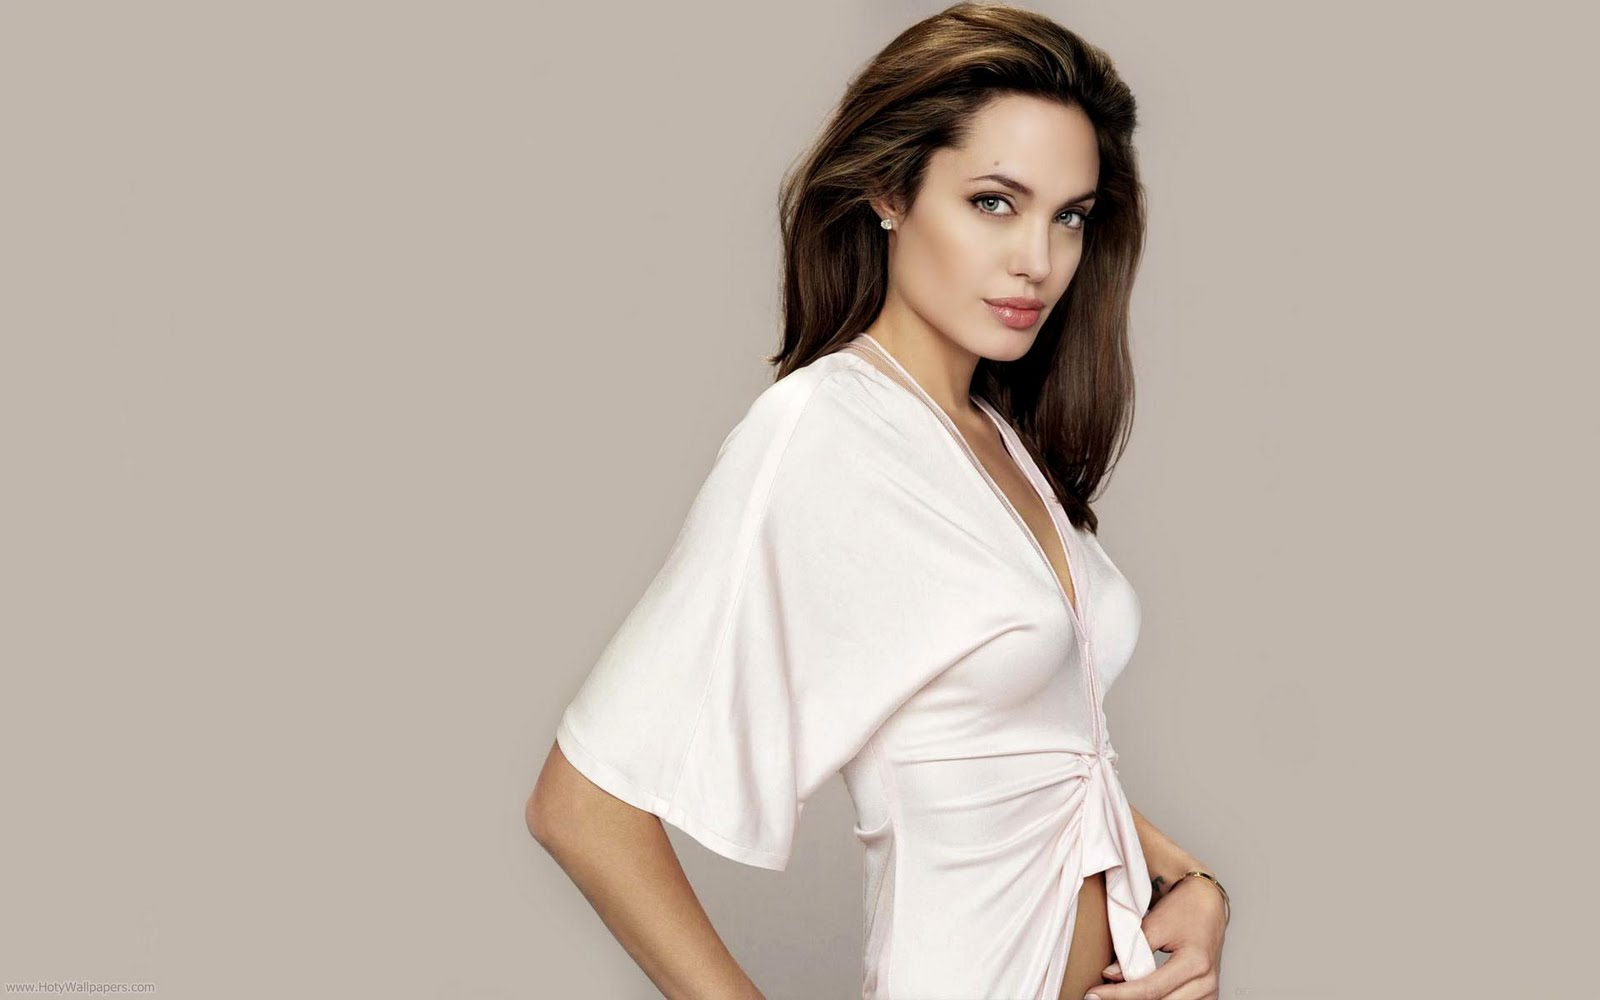 http://2.bp.blogspot.com/-PtQ8Bj6n4Gk/TxQpYgVJJgI/AAAAAAAACYo/tO1bNXKXj_I/s1600/angelina_jolie_hollywood_photo_shoot-1920x1200.jpg